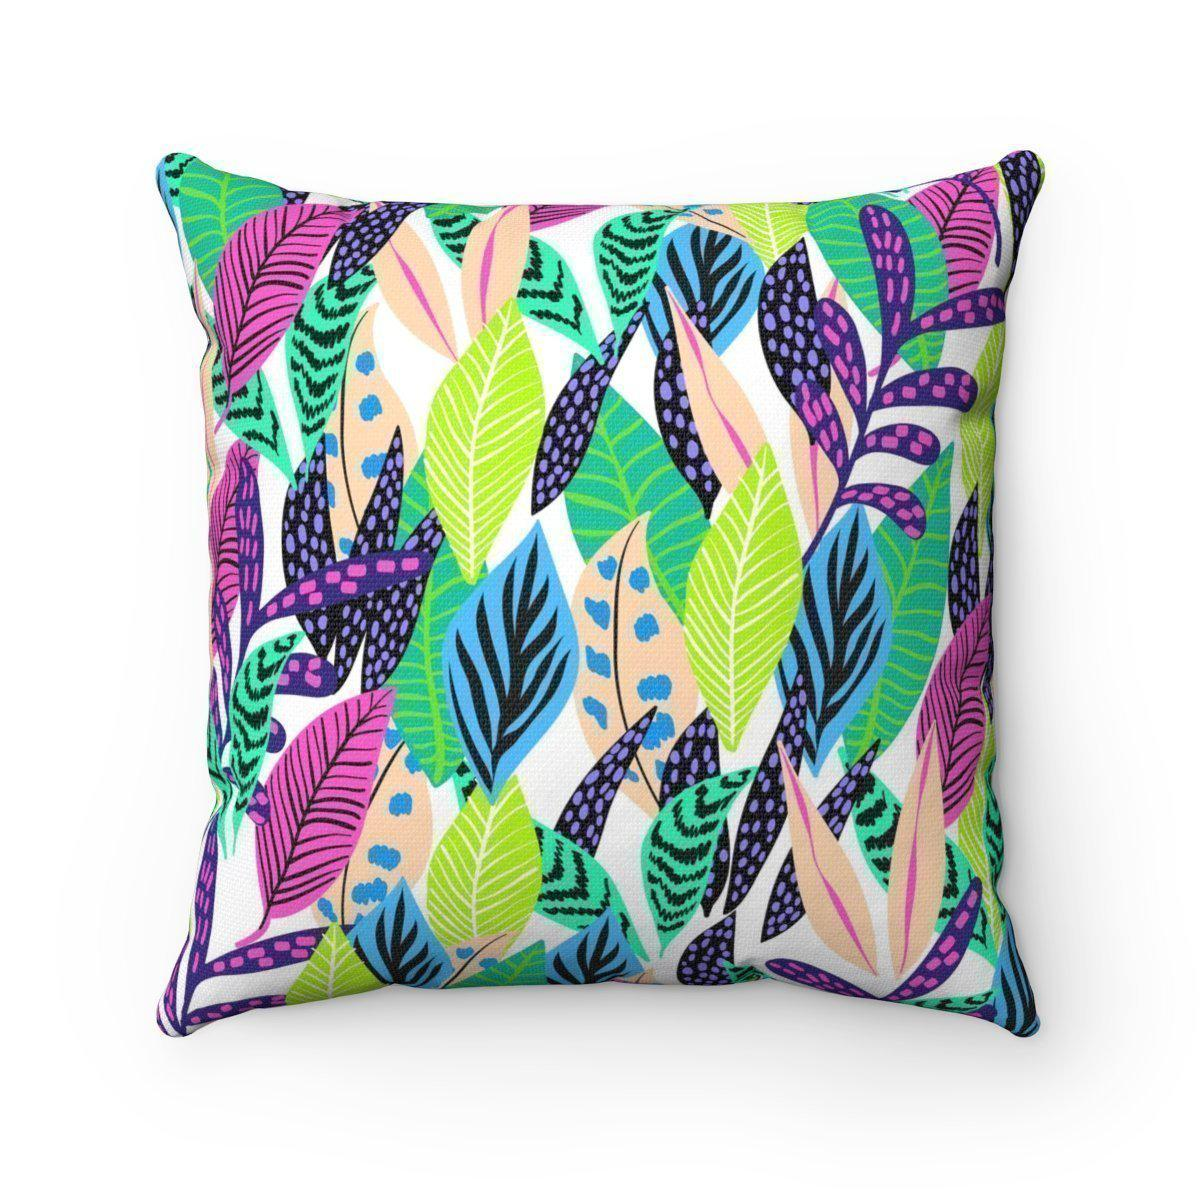 Modern tropical leaves jungle decorative cushion cover-Home Decor - Decorative Accents - Pillows & Throws - Decorative Pillows-Maison d'Elite-18x18-Très Elite